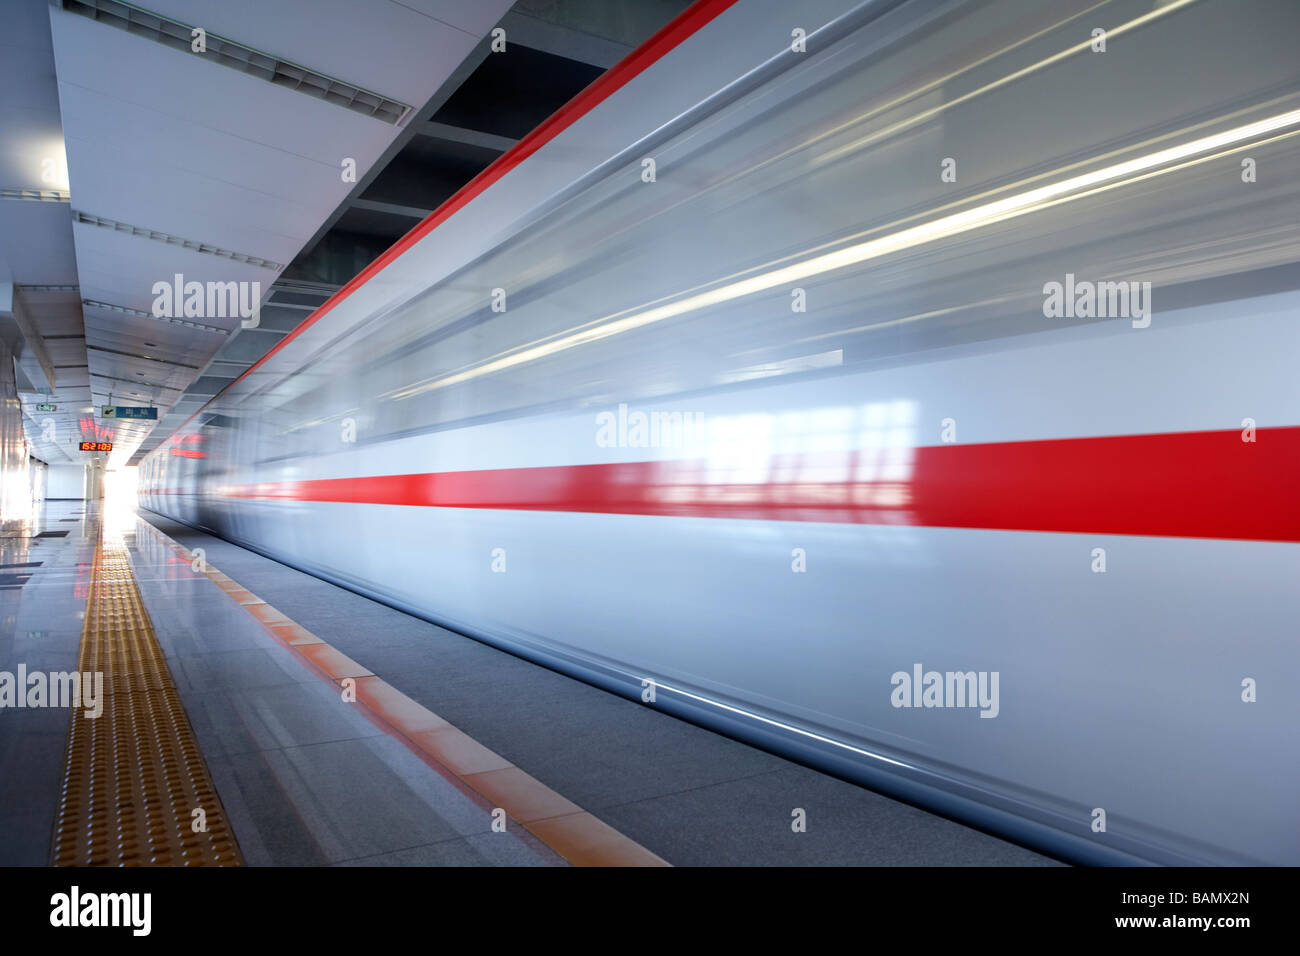 Subway Train Speeding Past Platform Stock Photo